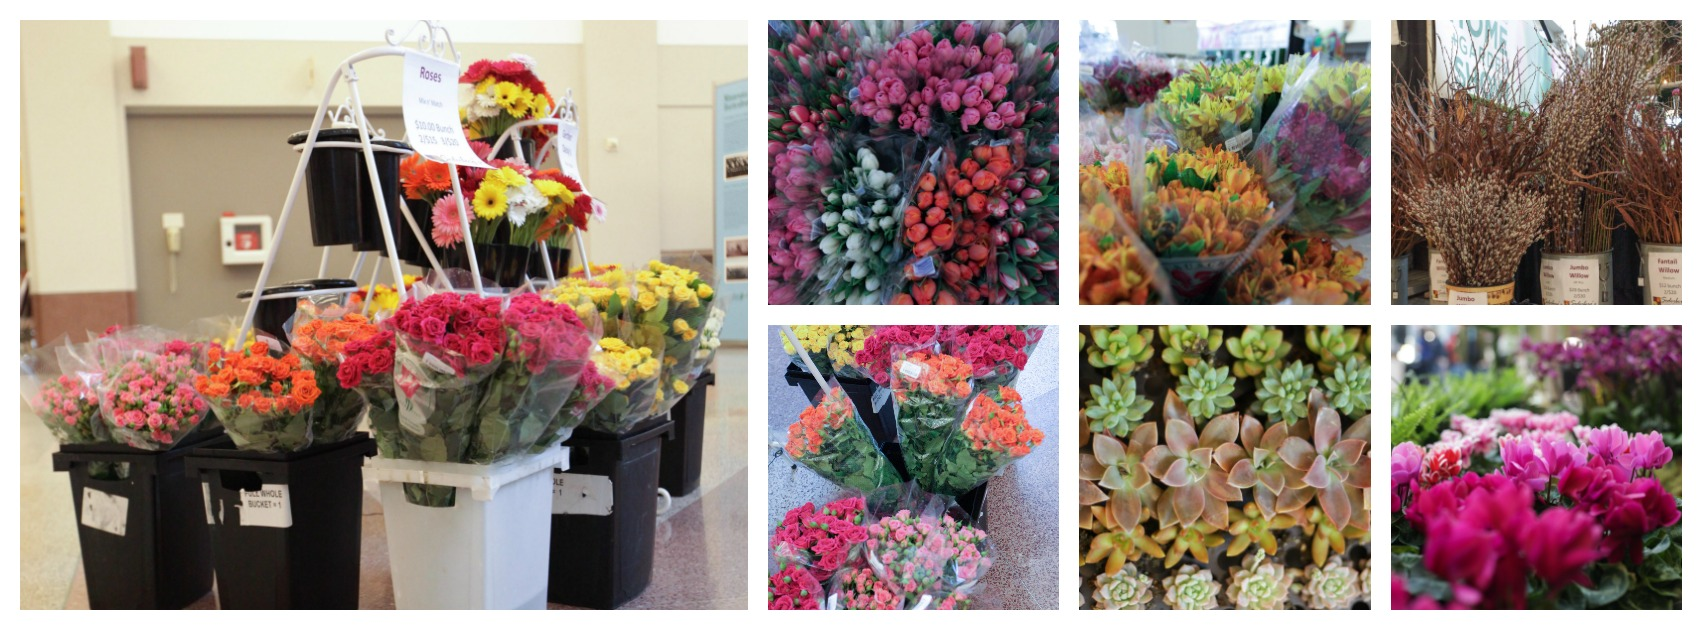 flower-sales-collage.jpg